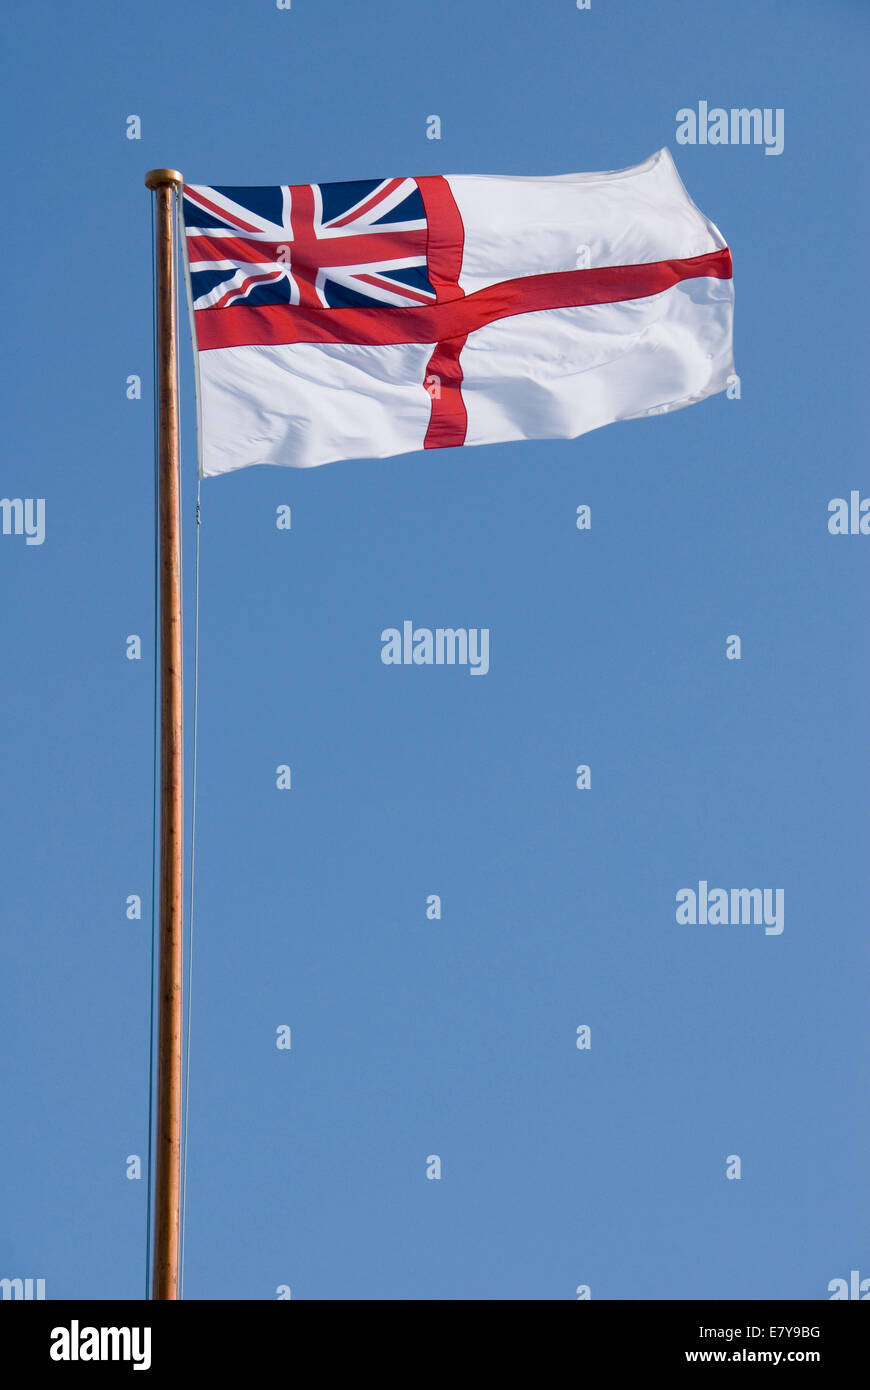 george cross flag of england a white flag with red cross and inset